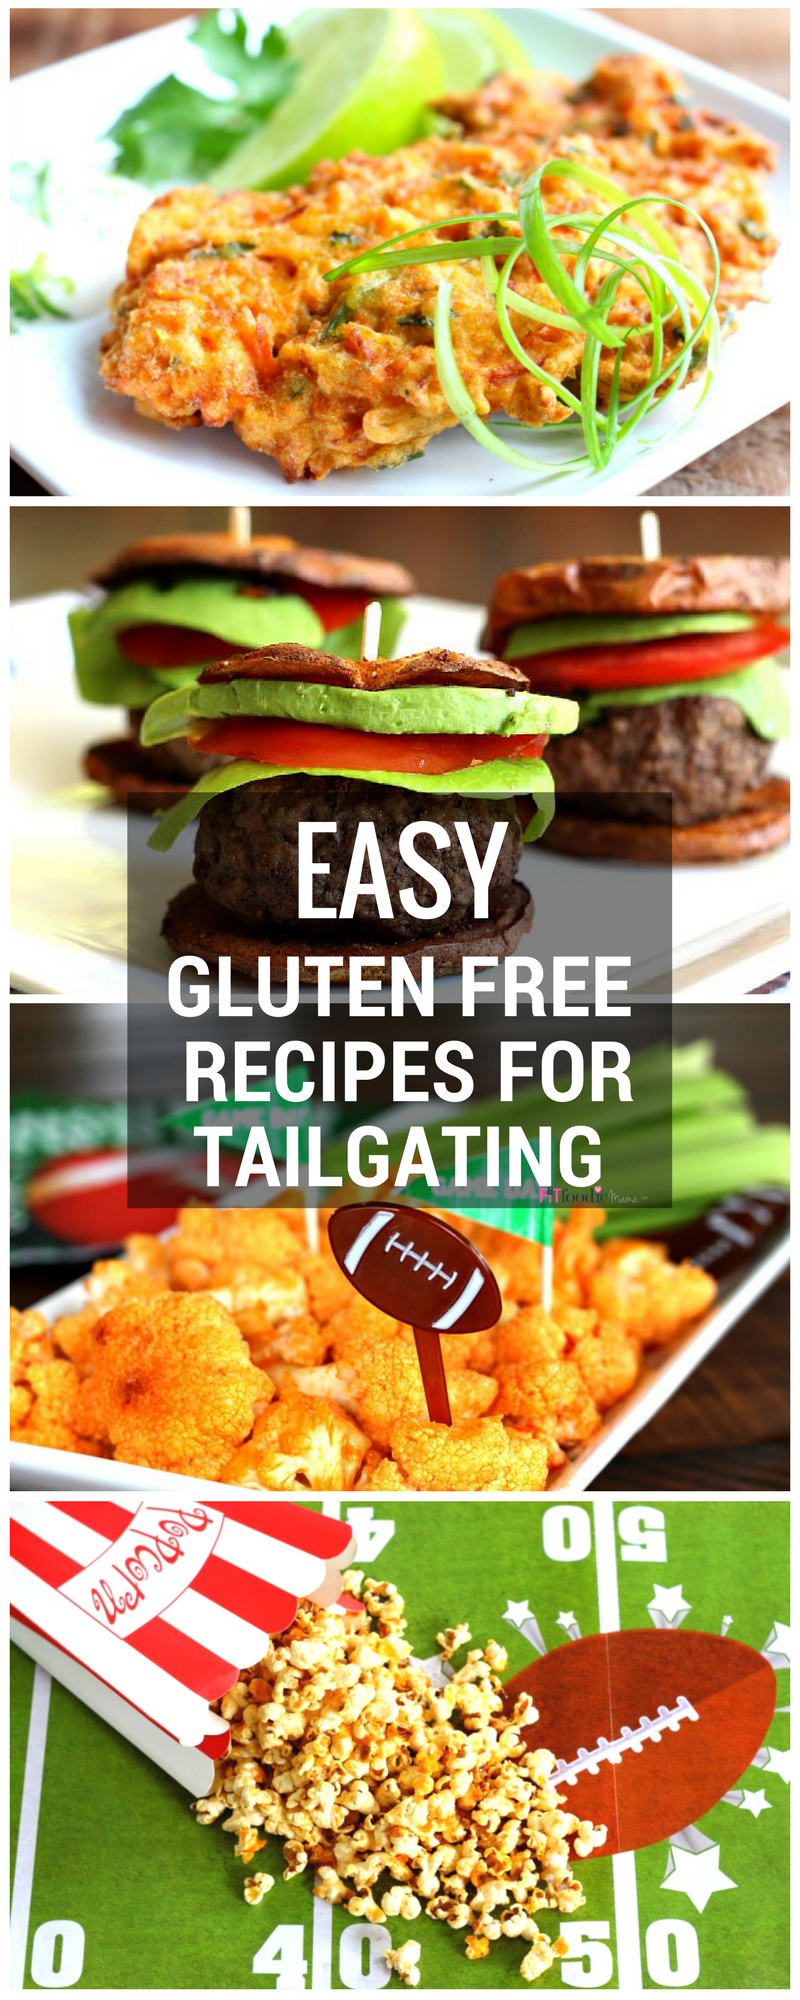 Easy Gluten Free Recipes for Tailgating this Football Season